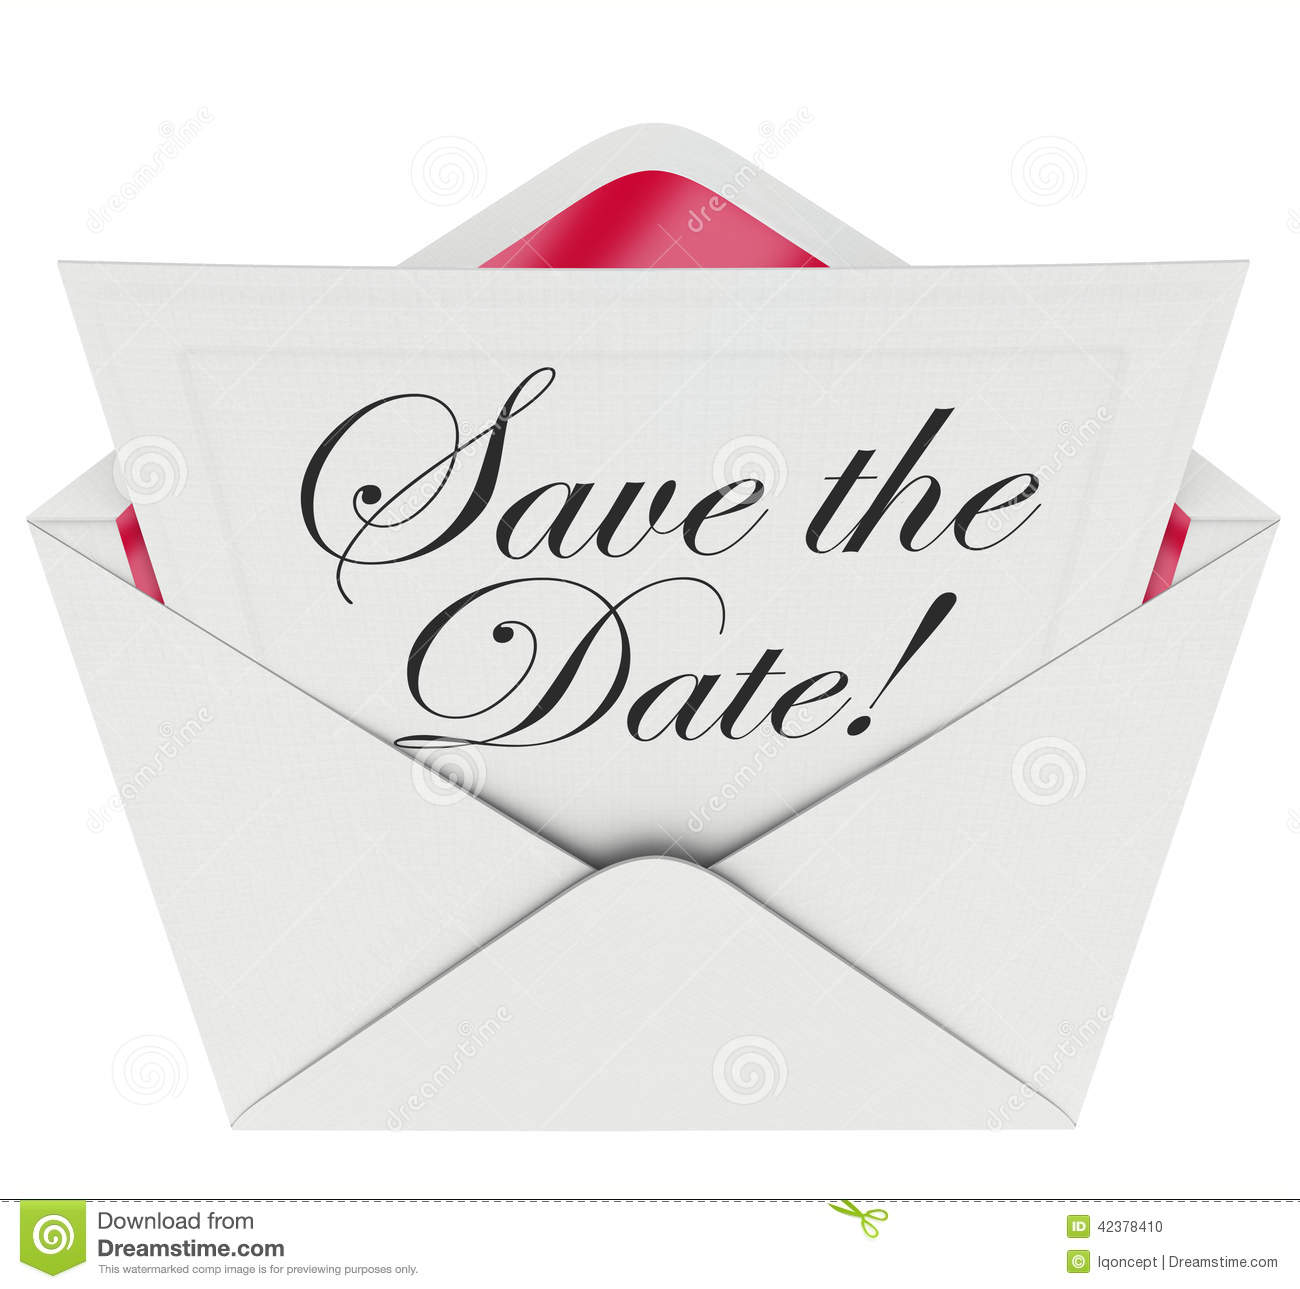 Save The Date Clip Art at Clker.com - vector clip art online, royalty ...